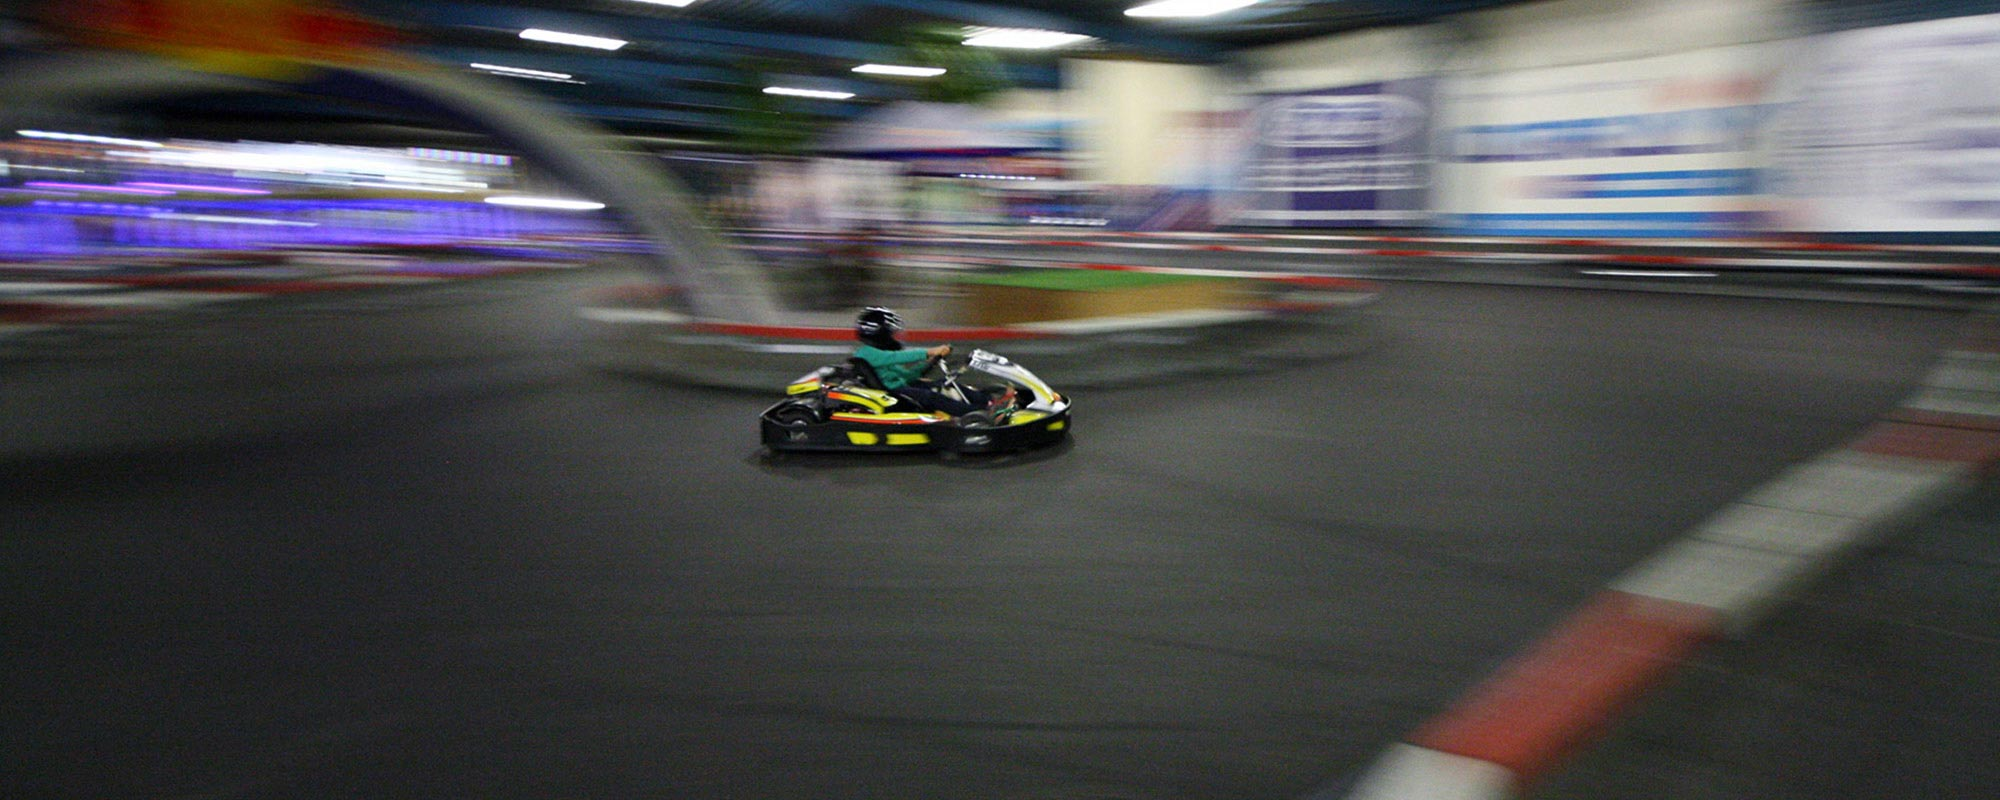 ebafkc-juniorkarting-2000x800-22